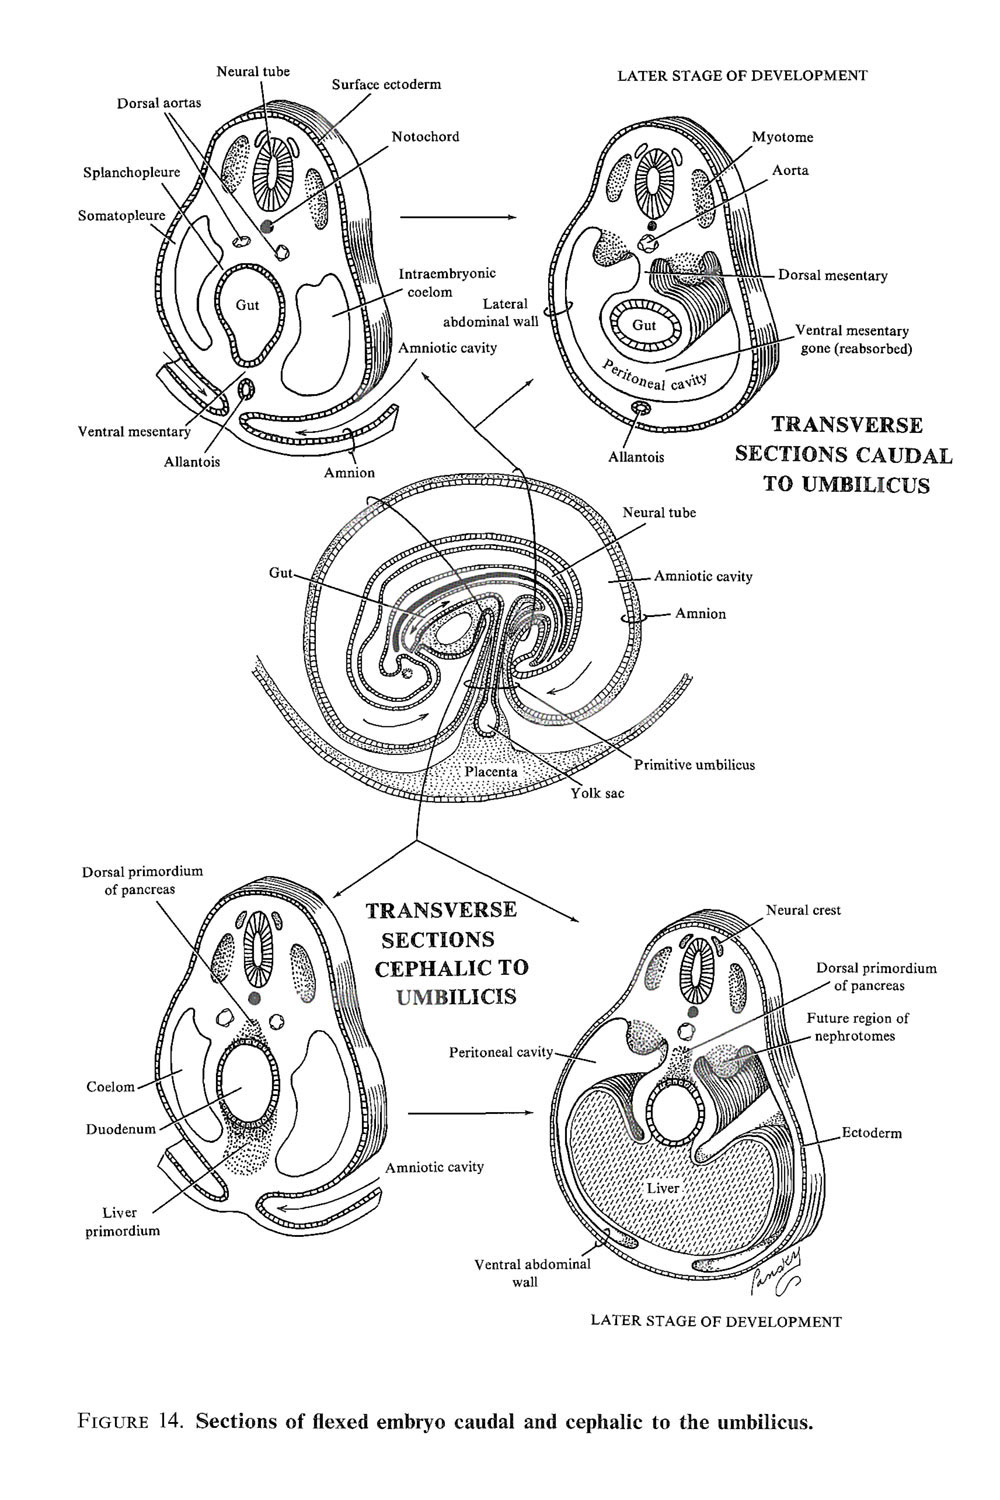 embryonic folding and  flexion of the embryo: image #3